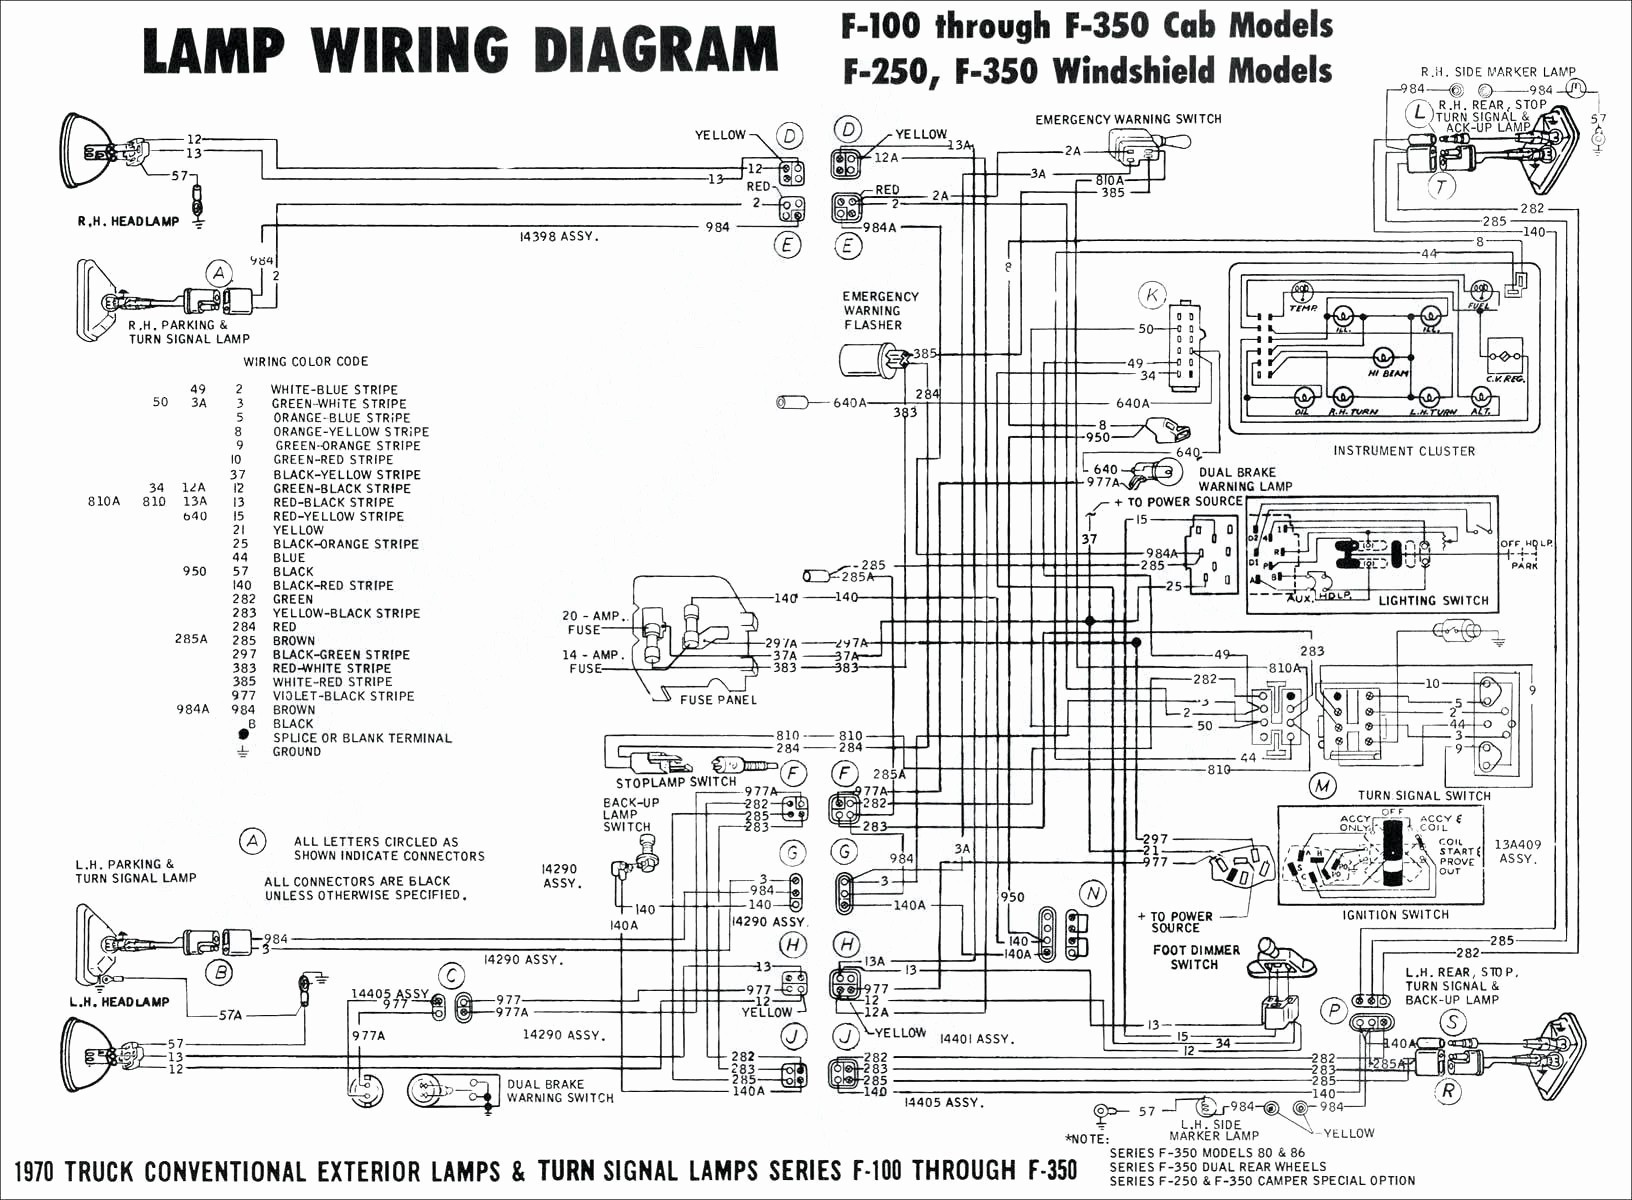 1995 Chevy Silverado Radio Wiring Diagram Fresh Brake Light Wiring Diagram Chevy Manual New Tail Light Wiring